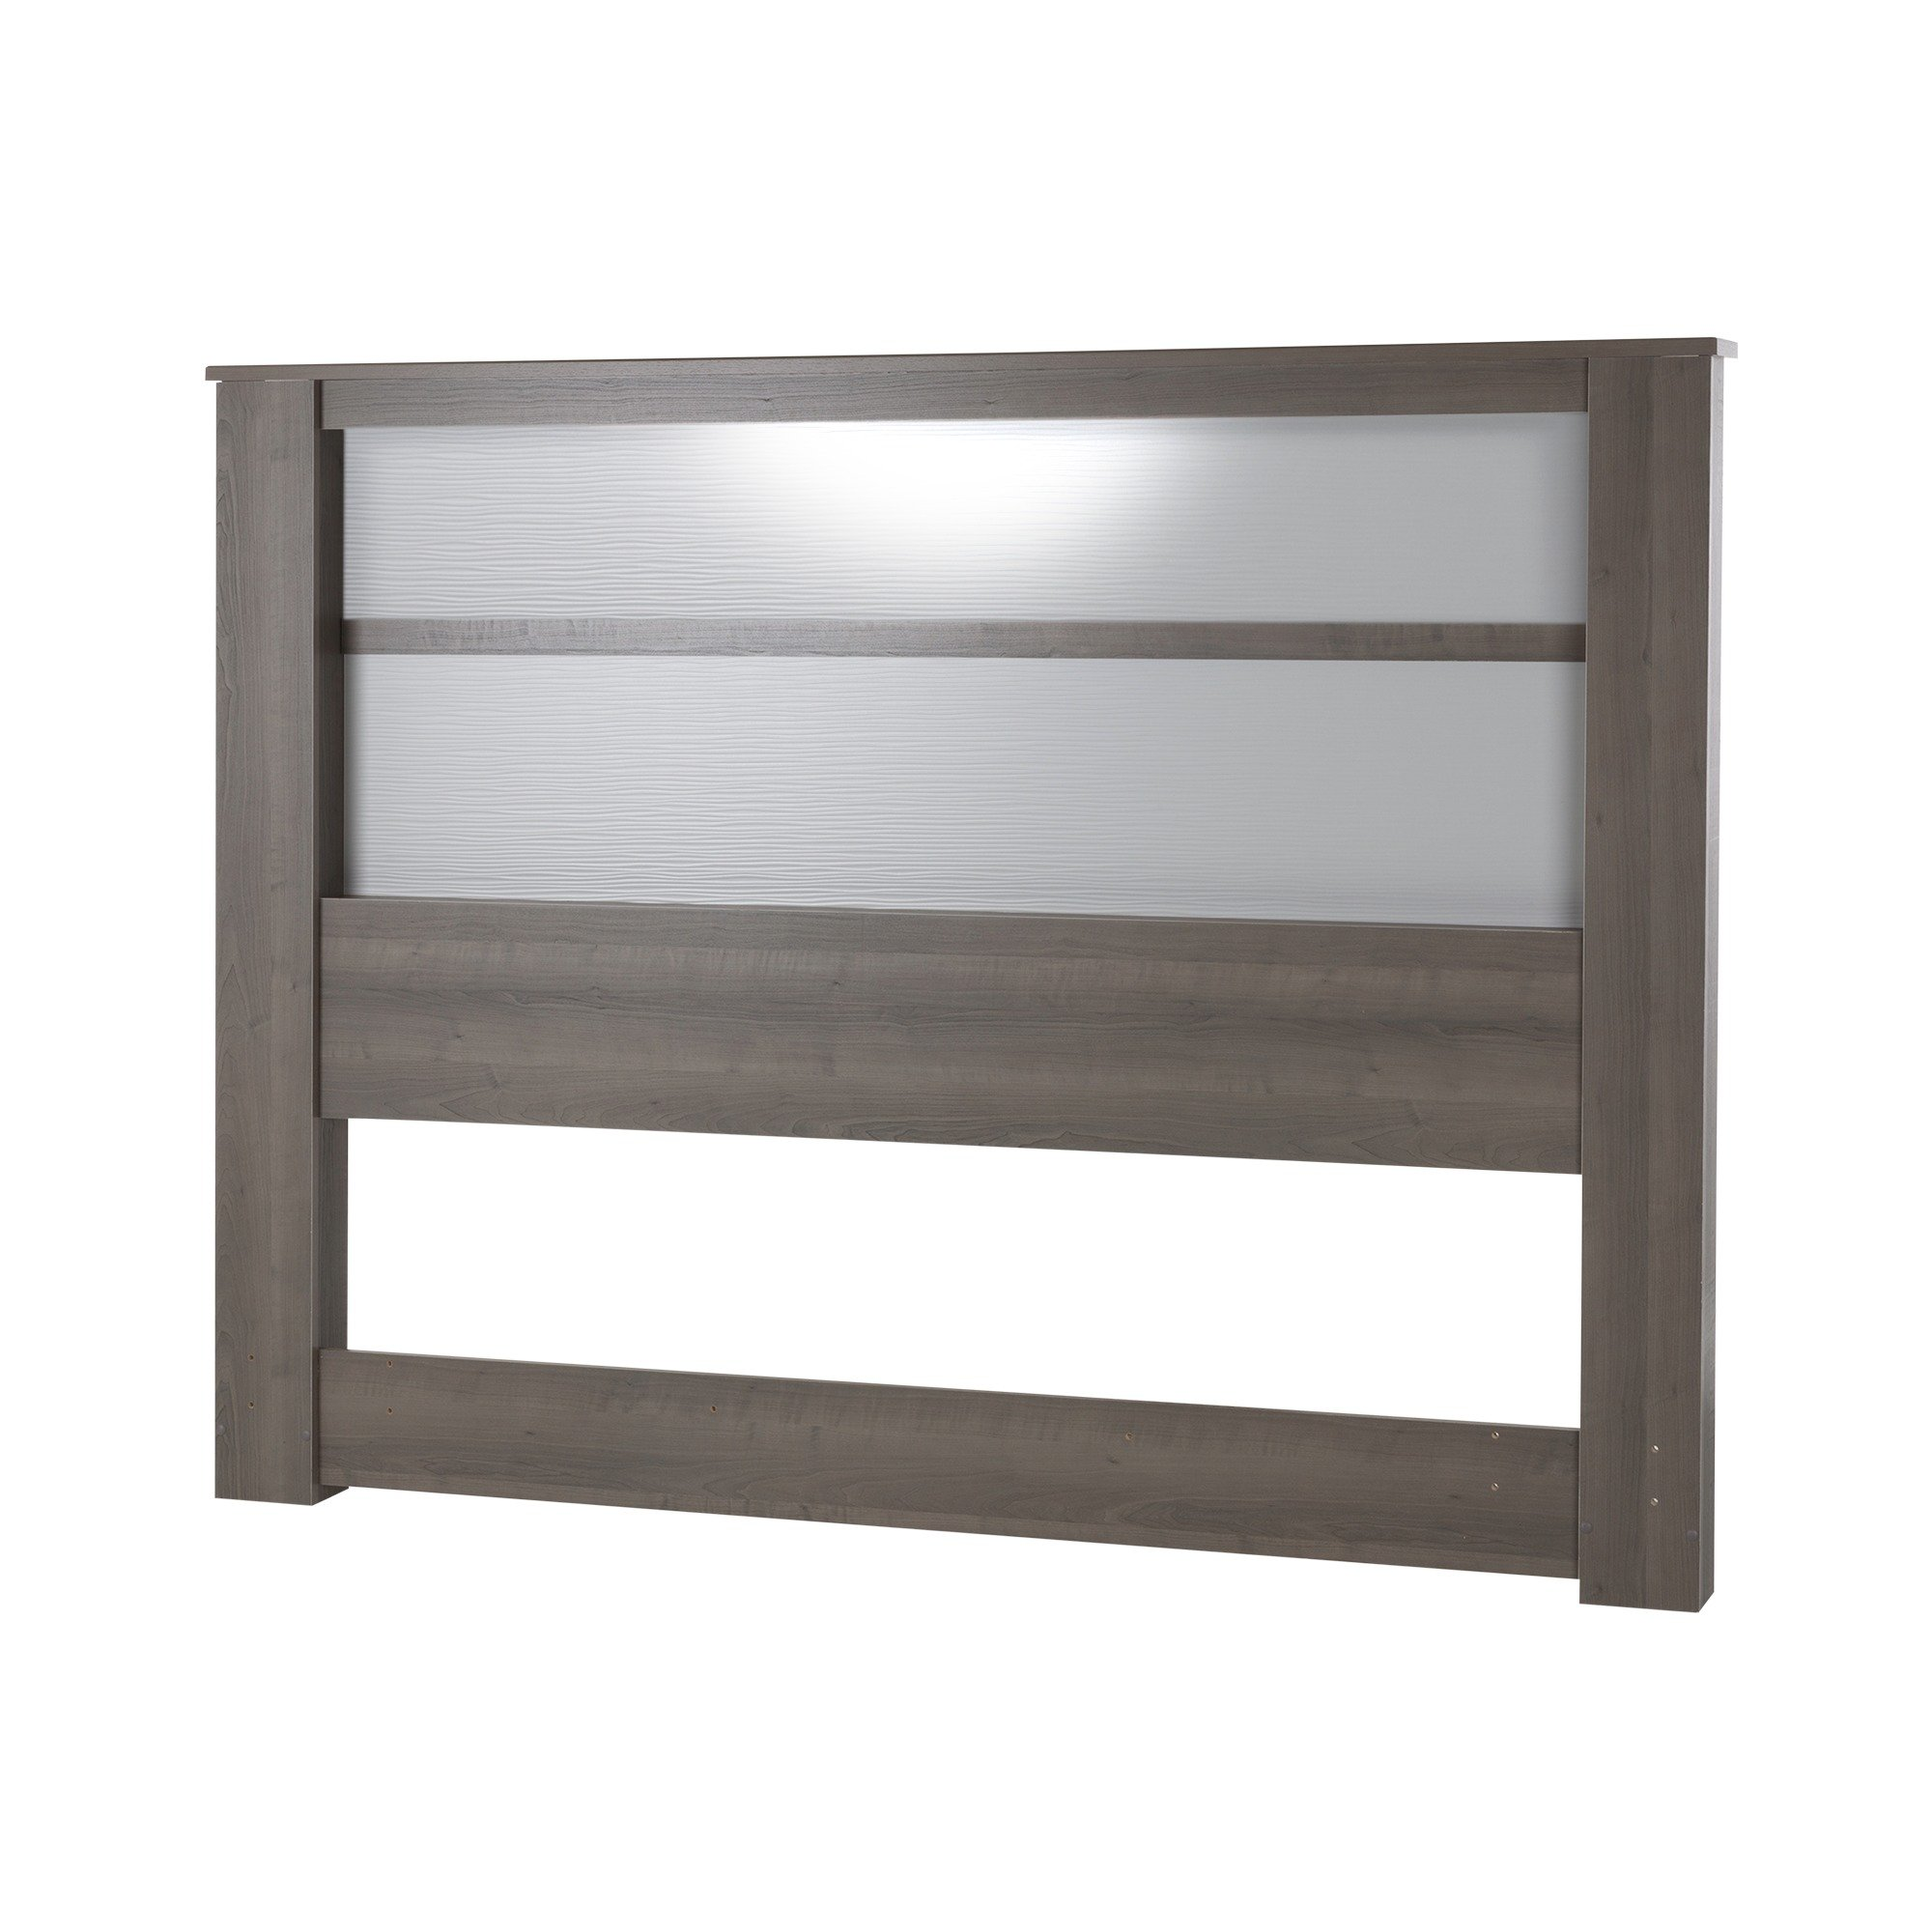 South Shore Gloria Headboard with Lights, King 78-Inch, Gray Maple by South Shore